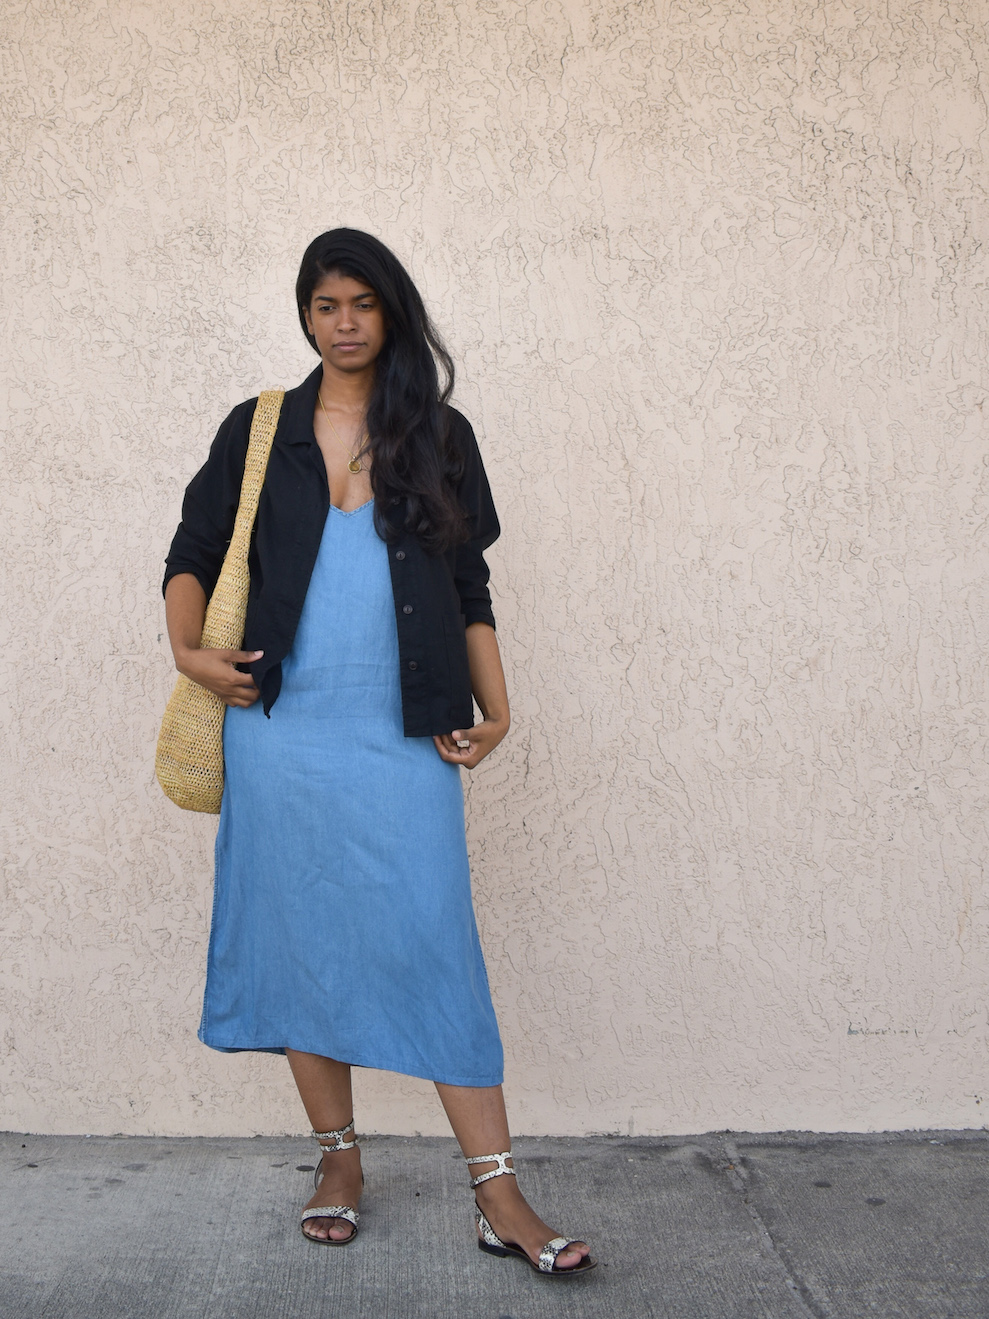 Straw Bag Loose Dress // Week Of Outfits With Élan Byrd On The Good Trade